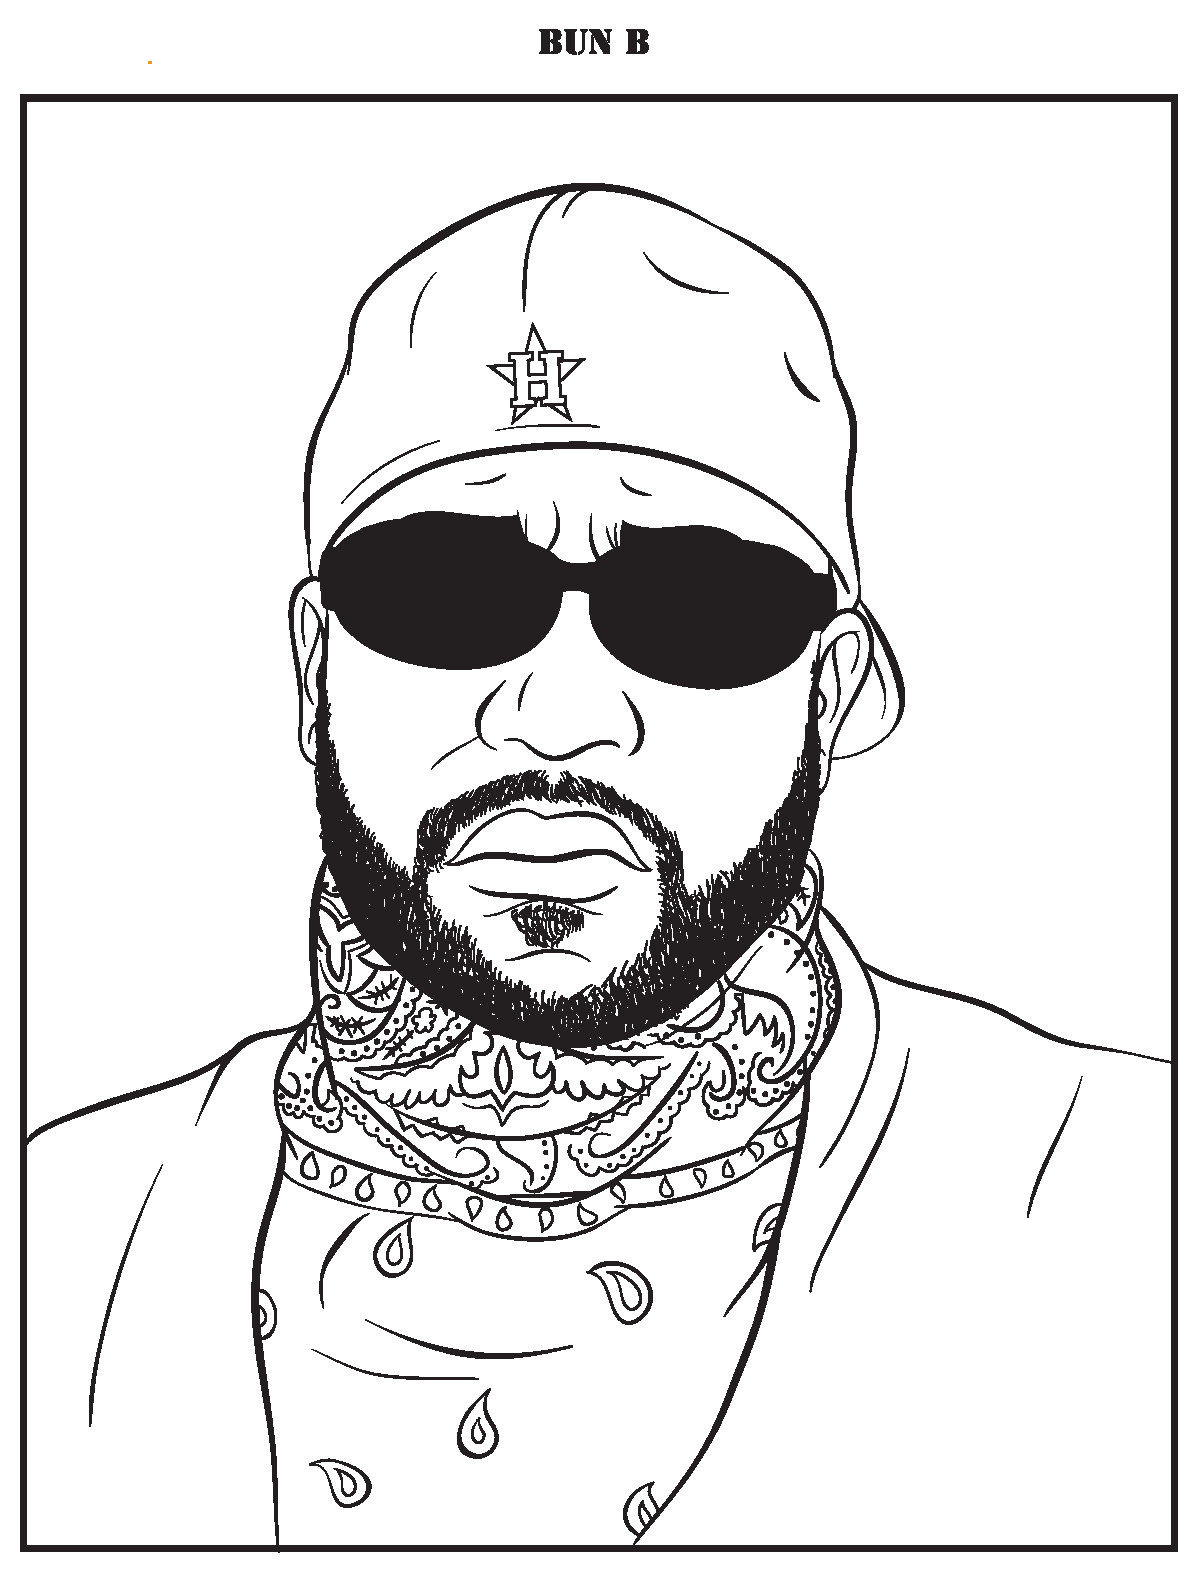 How Bun B Helped Push Southern Hip-Hop To The Forefront Of